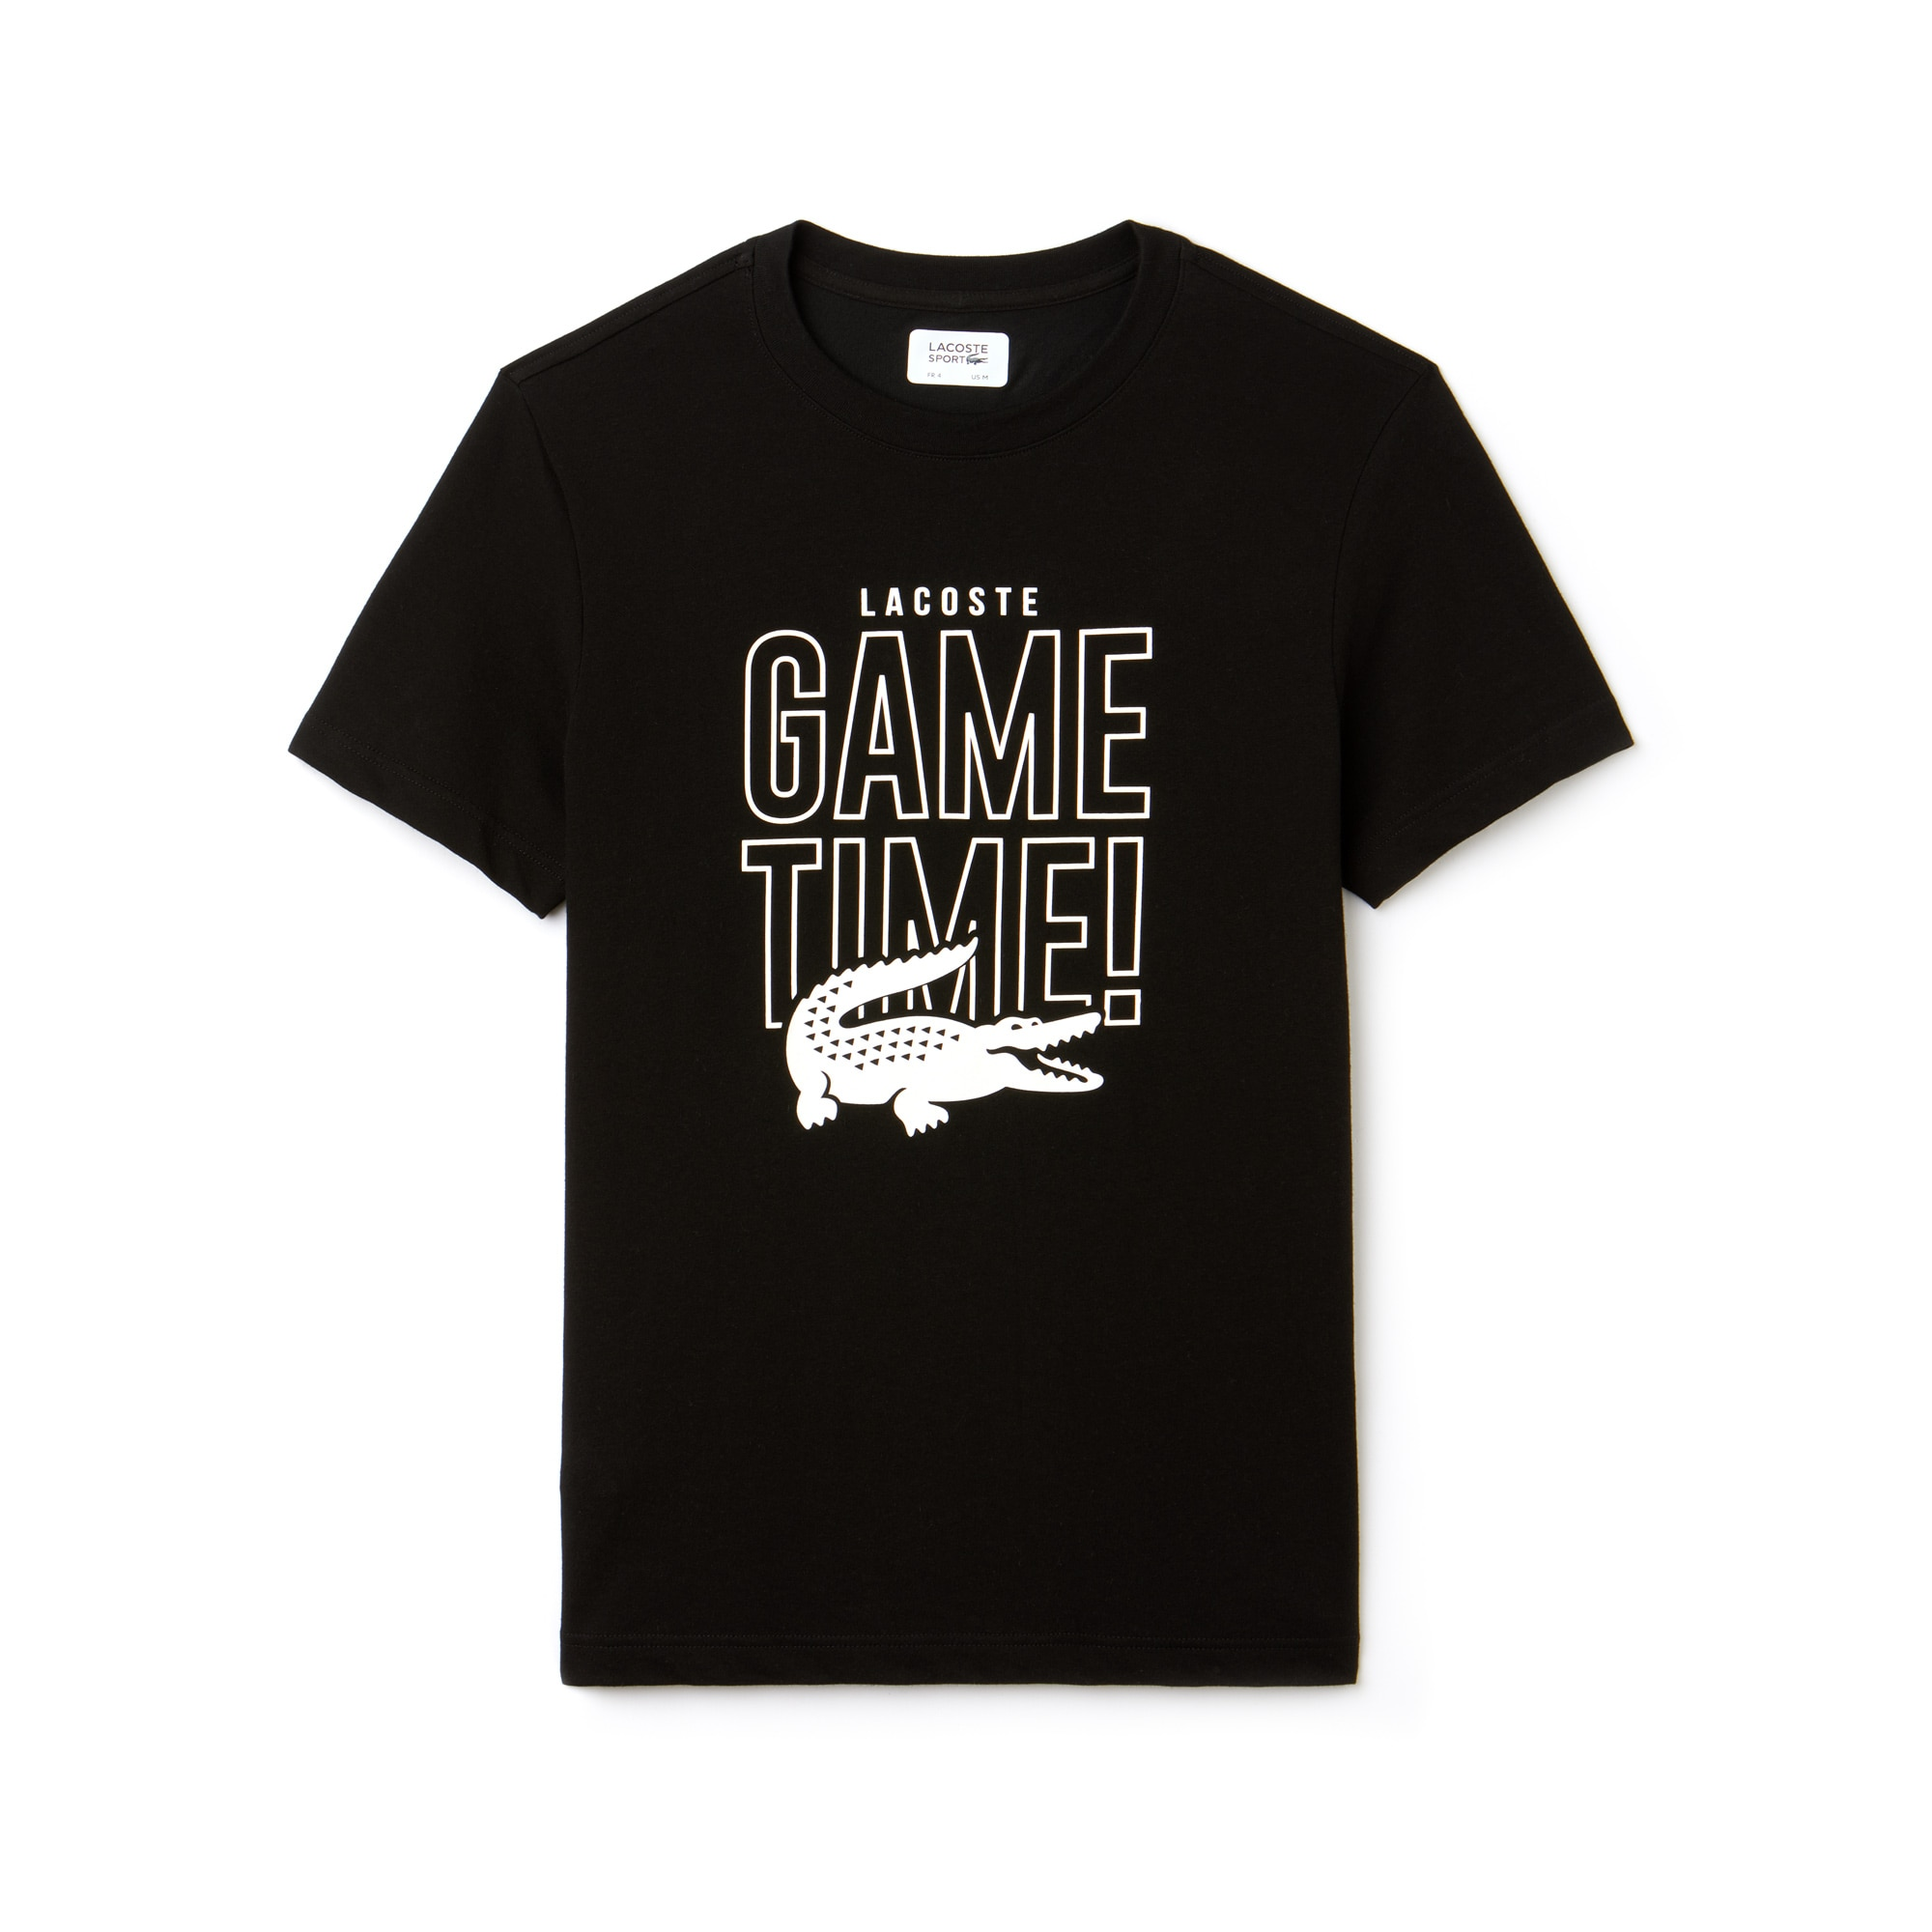 Men's Lacoste SPORT Game Time Crew Neck Jersey Tennis T-shirt